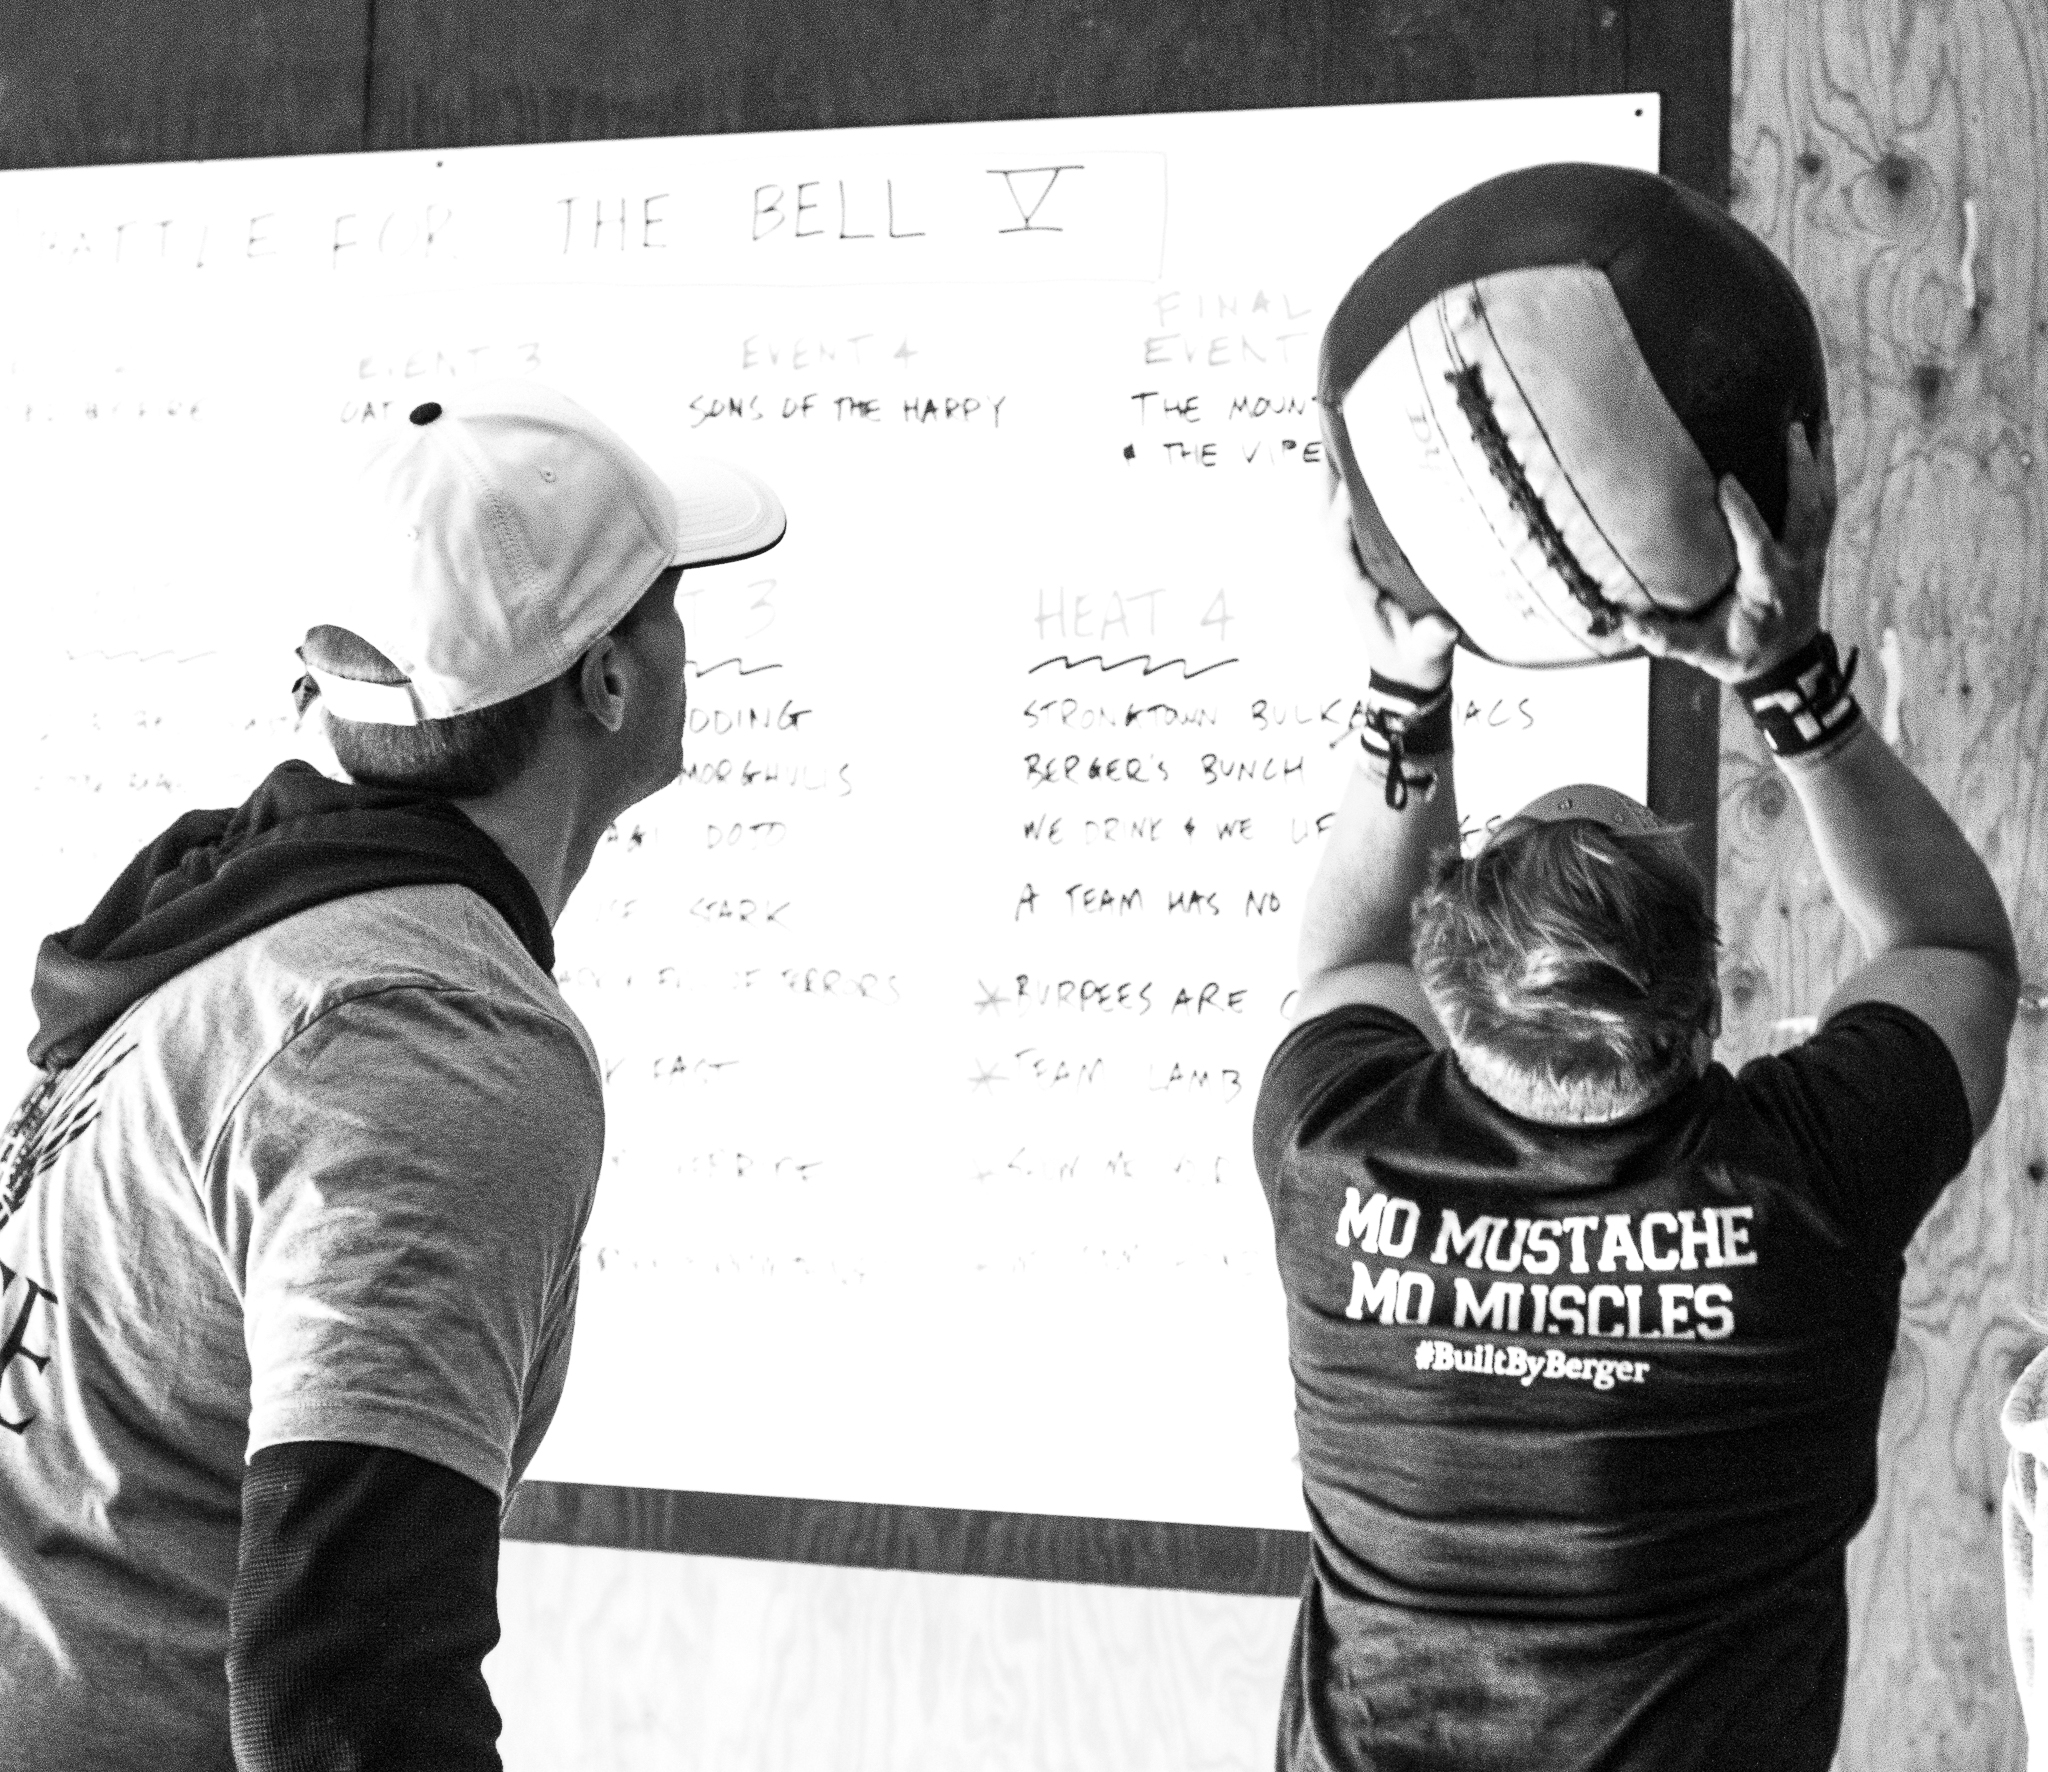 battle-for-bell-crossfit-strongtown-everyday-lifters (10 of 11).jpg